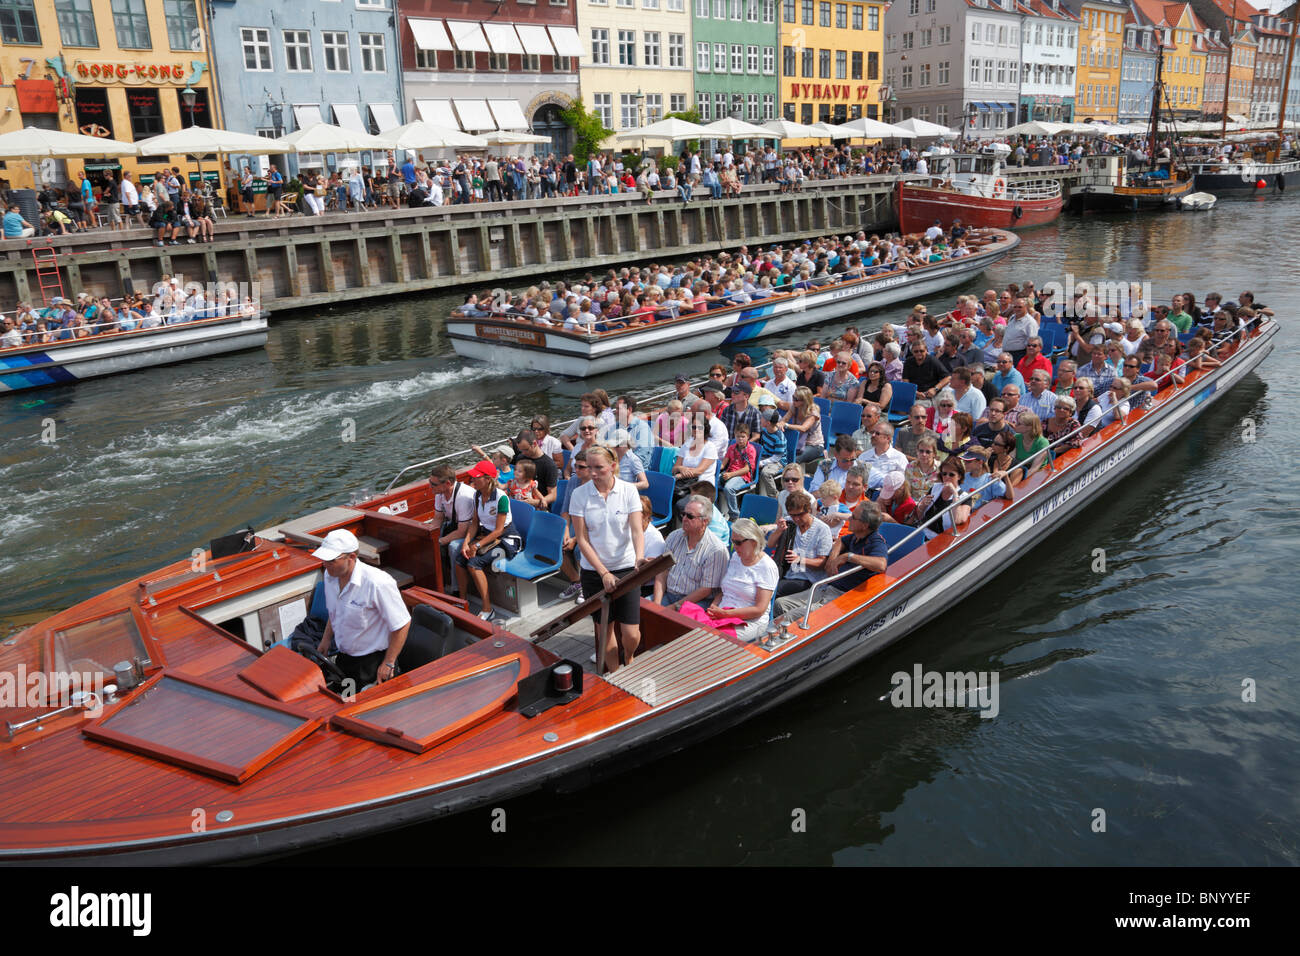 Nyhavn full of crowded canal tour boats and people in the waterside and pavement  restaurants on a very busy summer - Stock Image